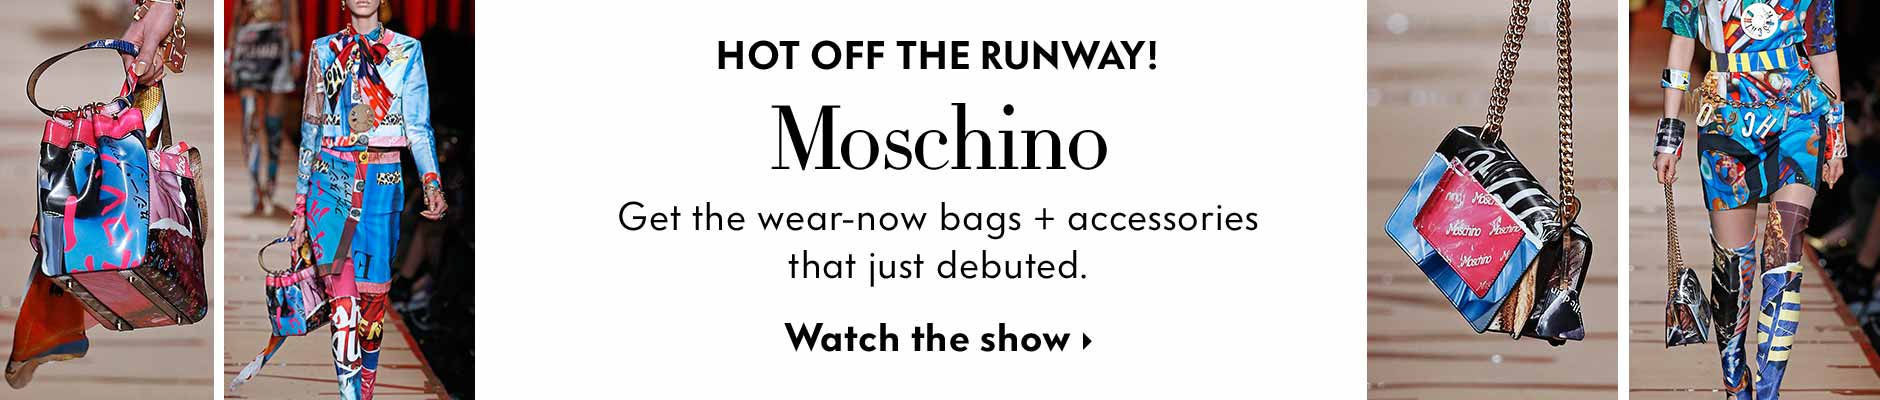 Hot off the runway! Moschino - Get the wear-now bags + accessories that just debuted. Watch the show